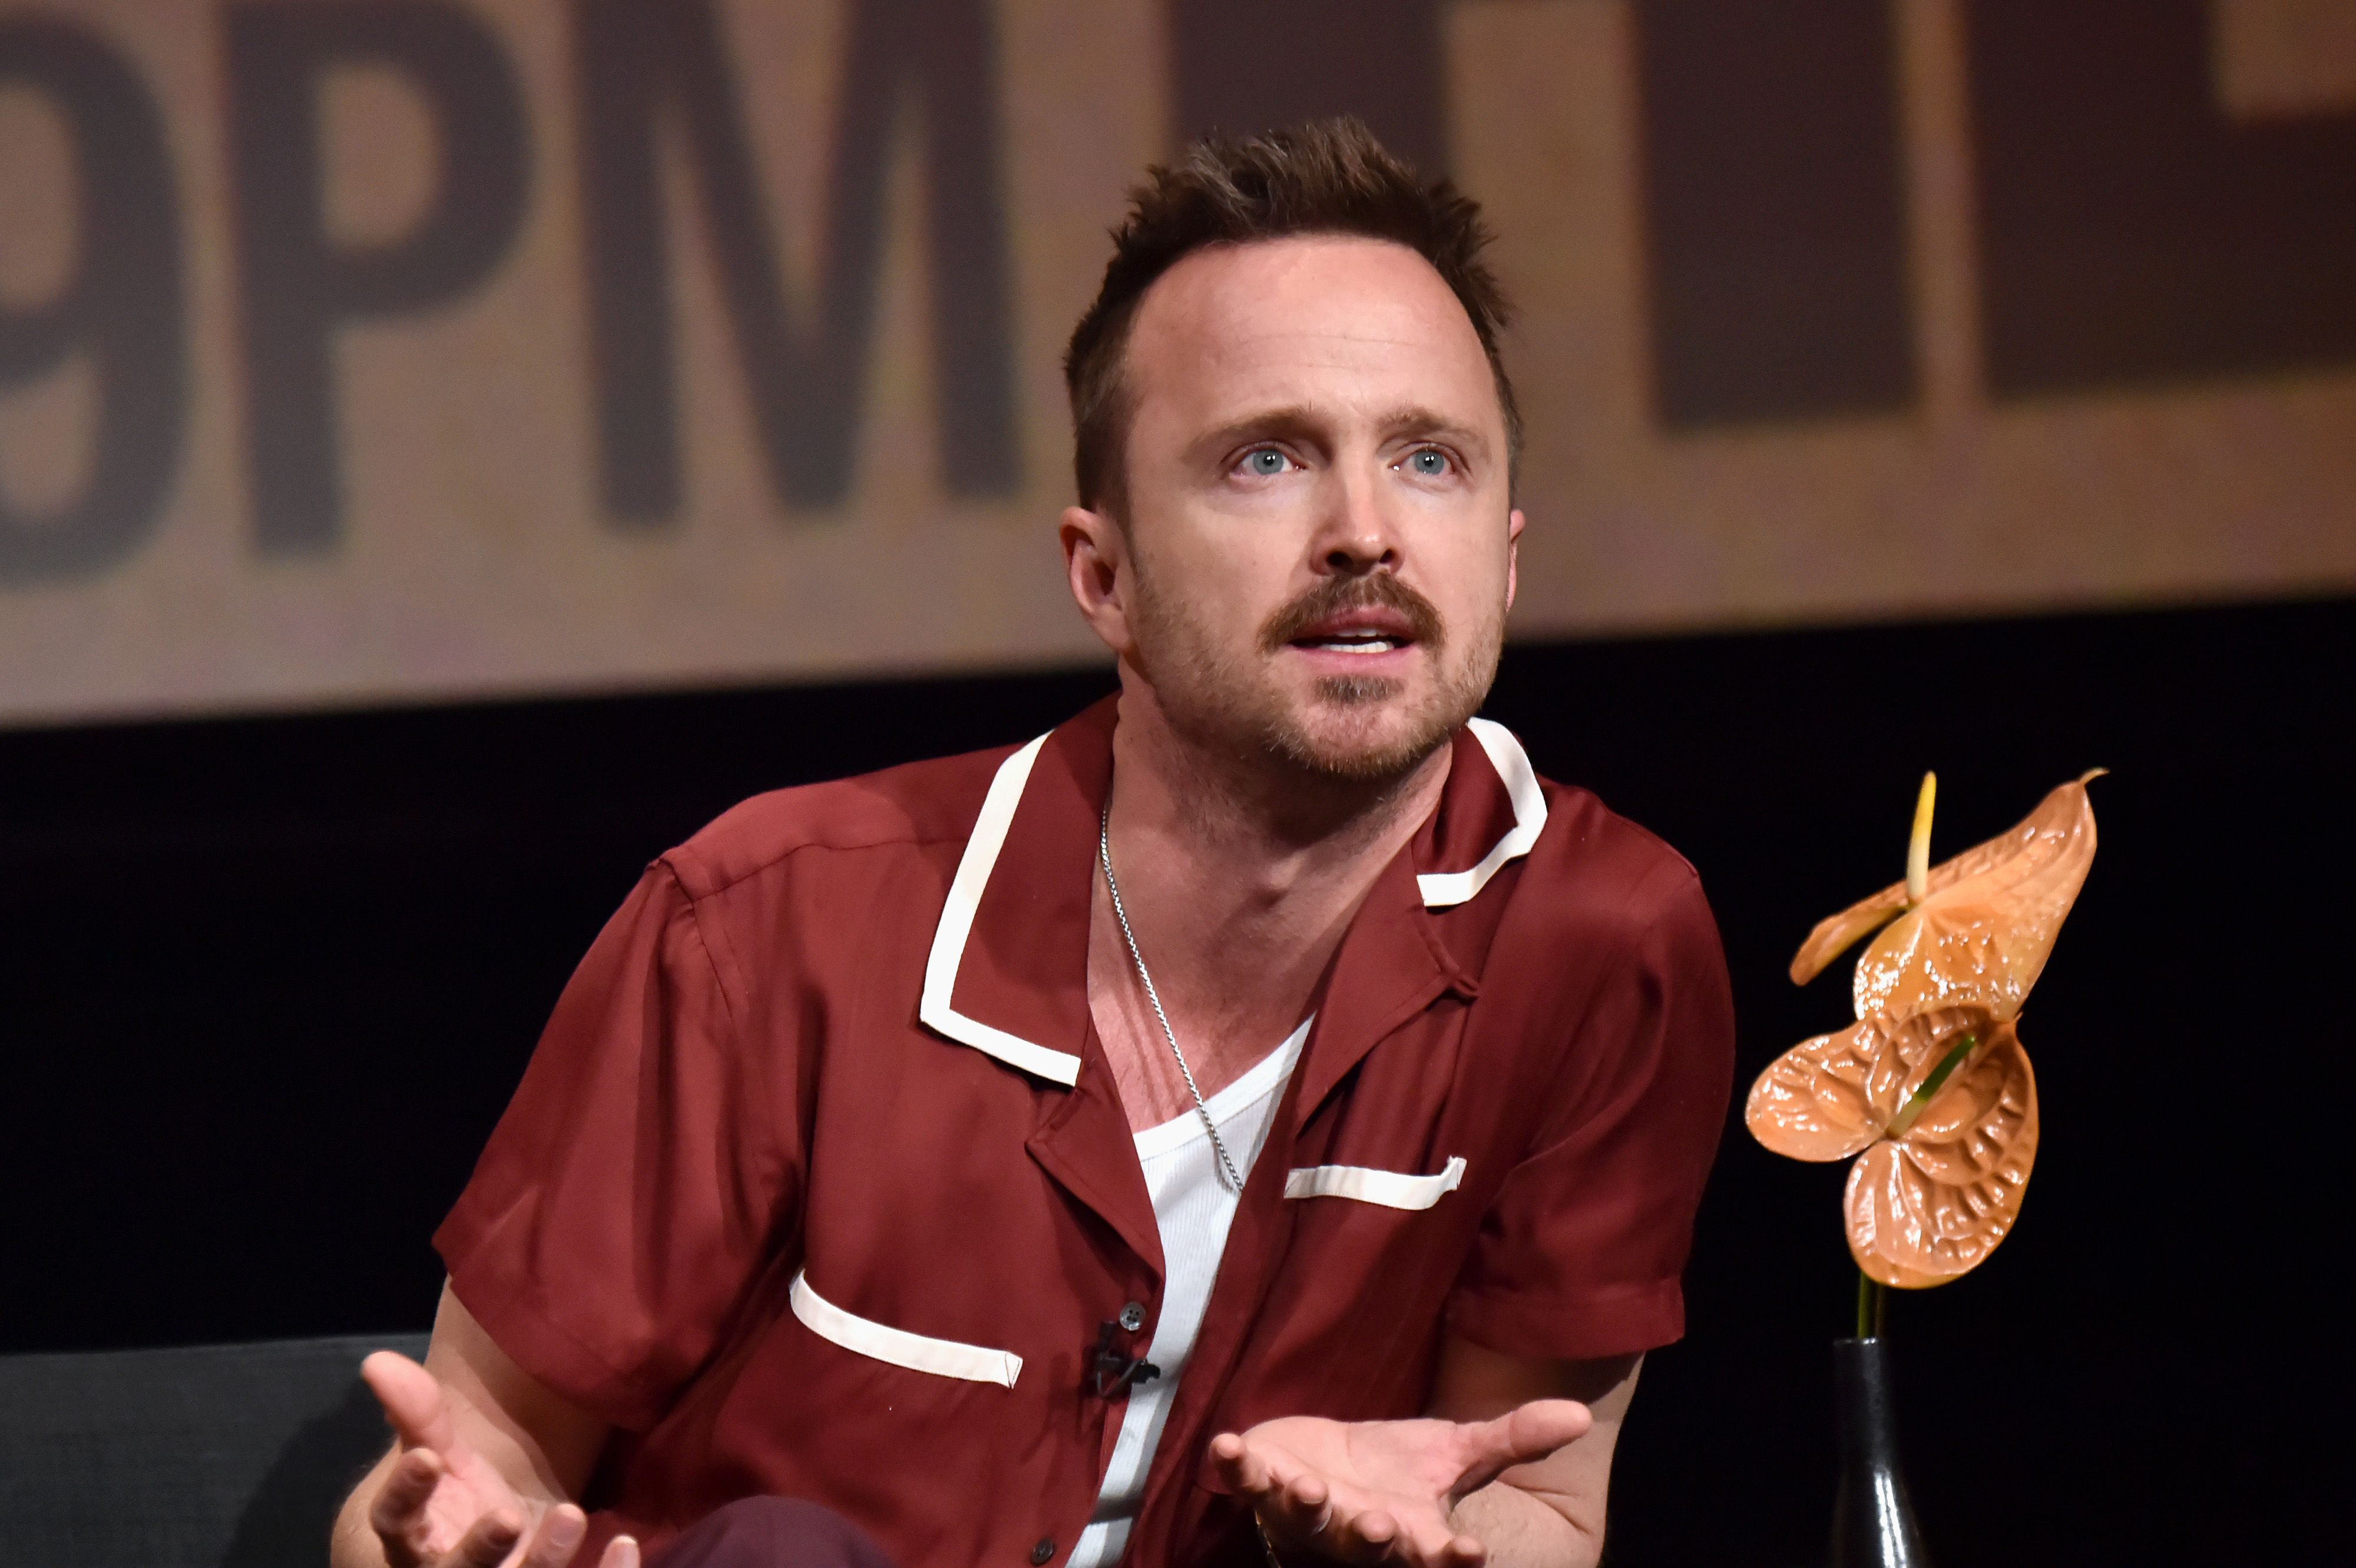 Aaron Paul Is Interested in Playing Late Rock Star Kurt Cobain in the Movie of His Life